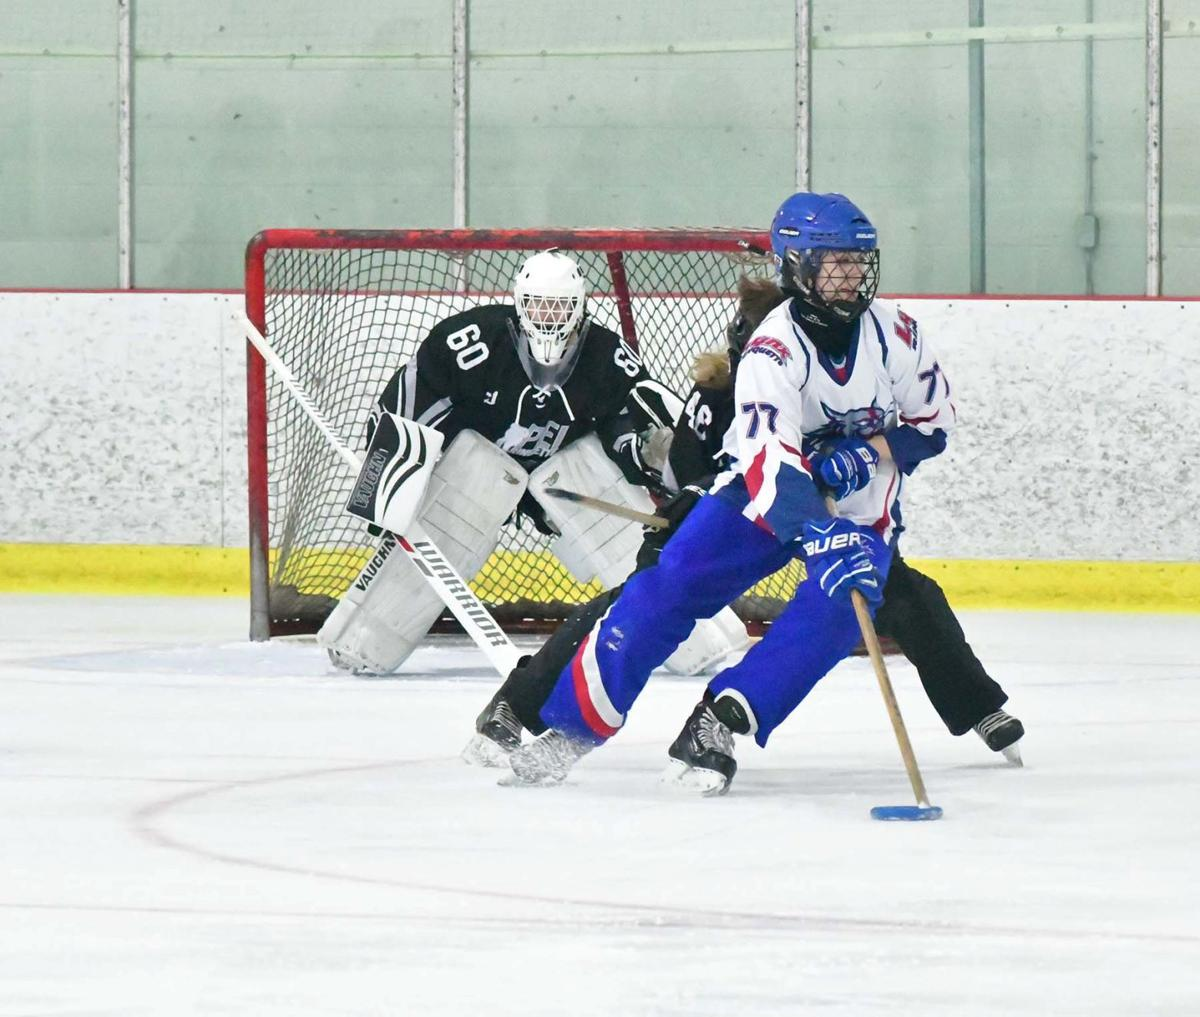 Chalk up another successful tourney for Pierrefonds Ringette